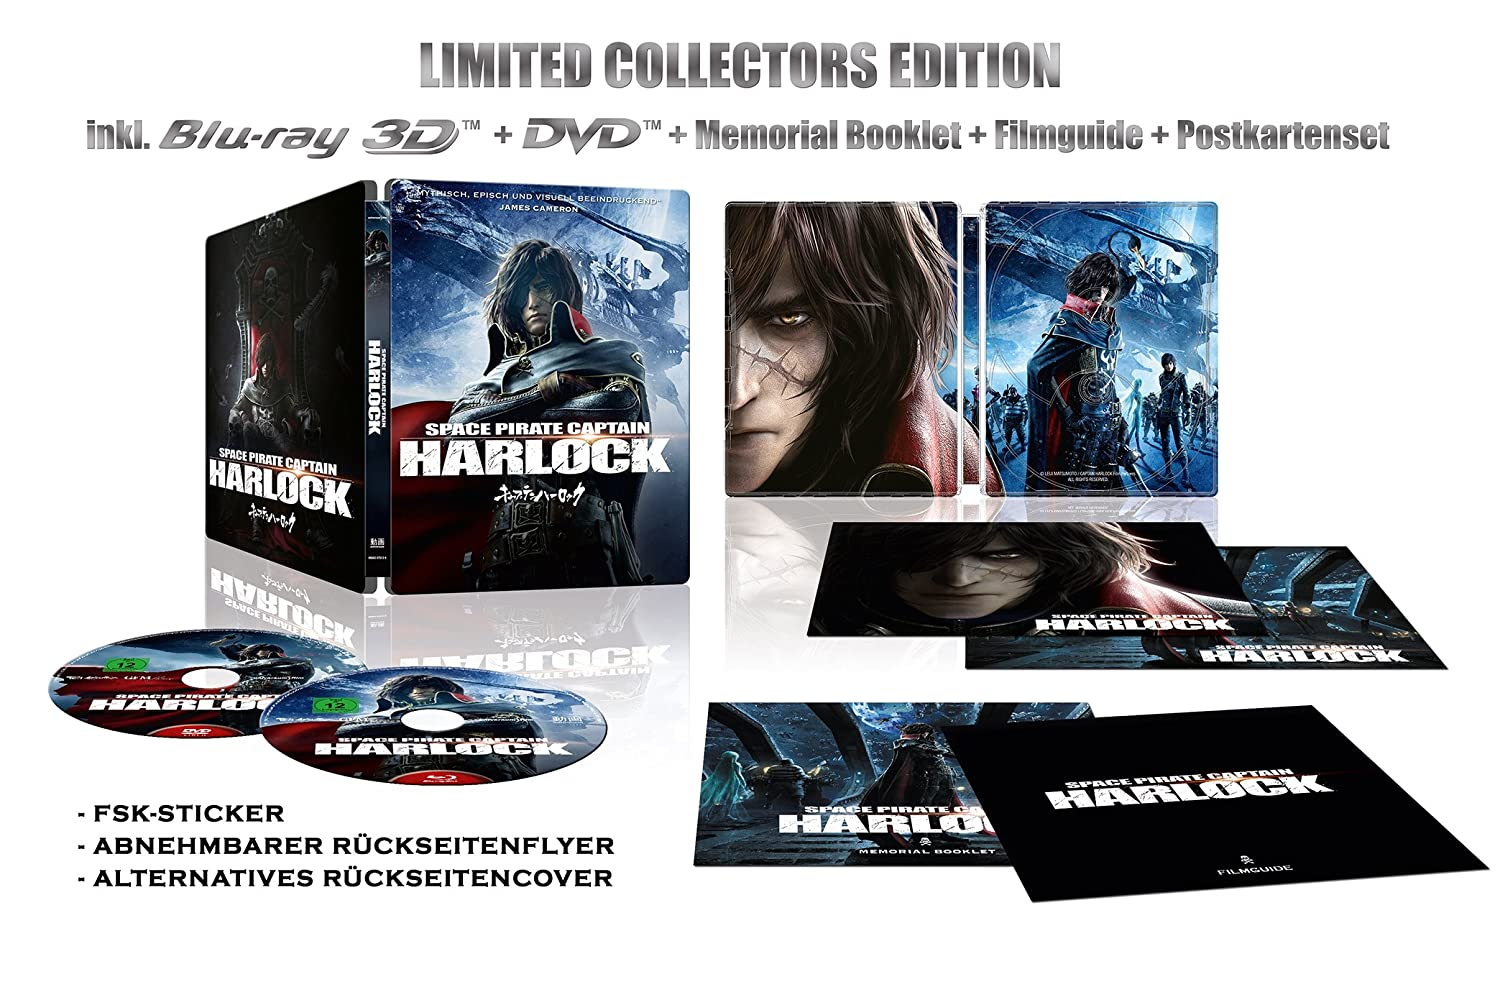 Space Pirate Captain Harlock - Limited Collector's Edition